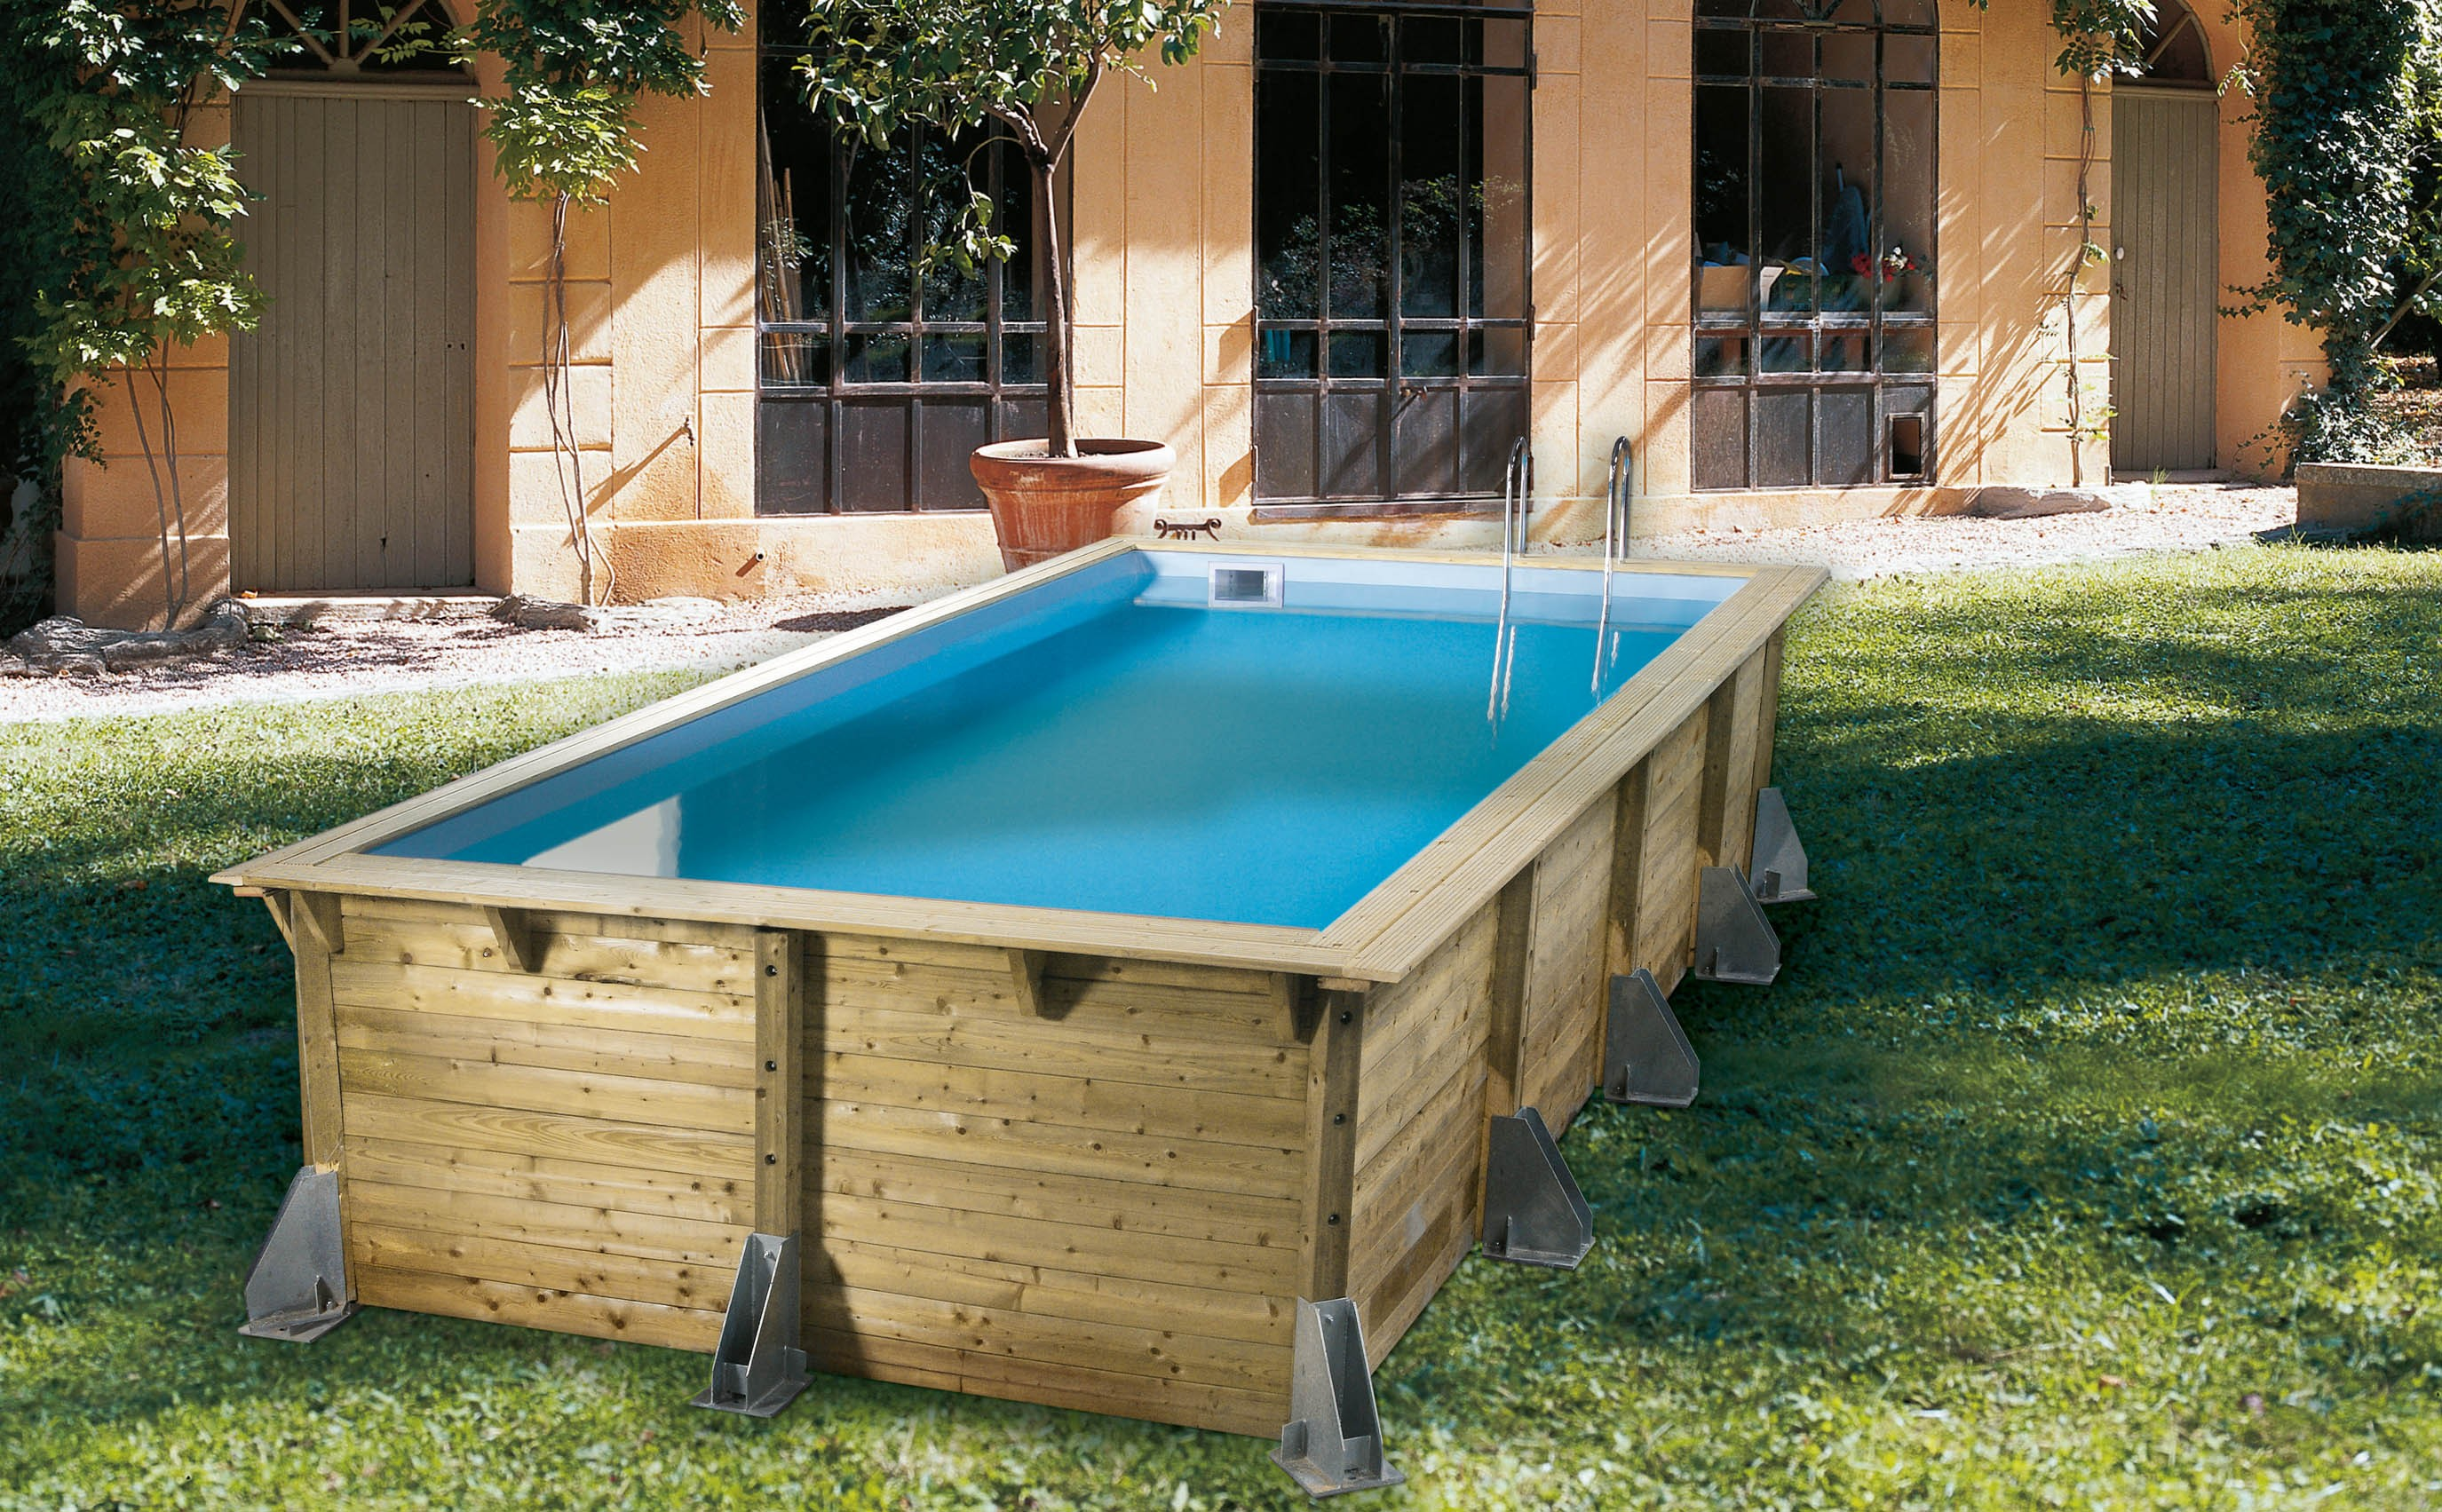 Piscine rectangulaire hors sol for Piscine autoportante bois